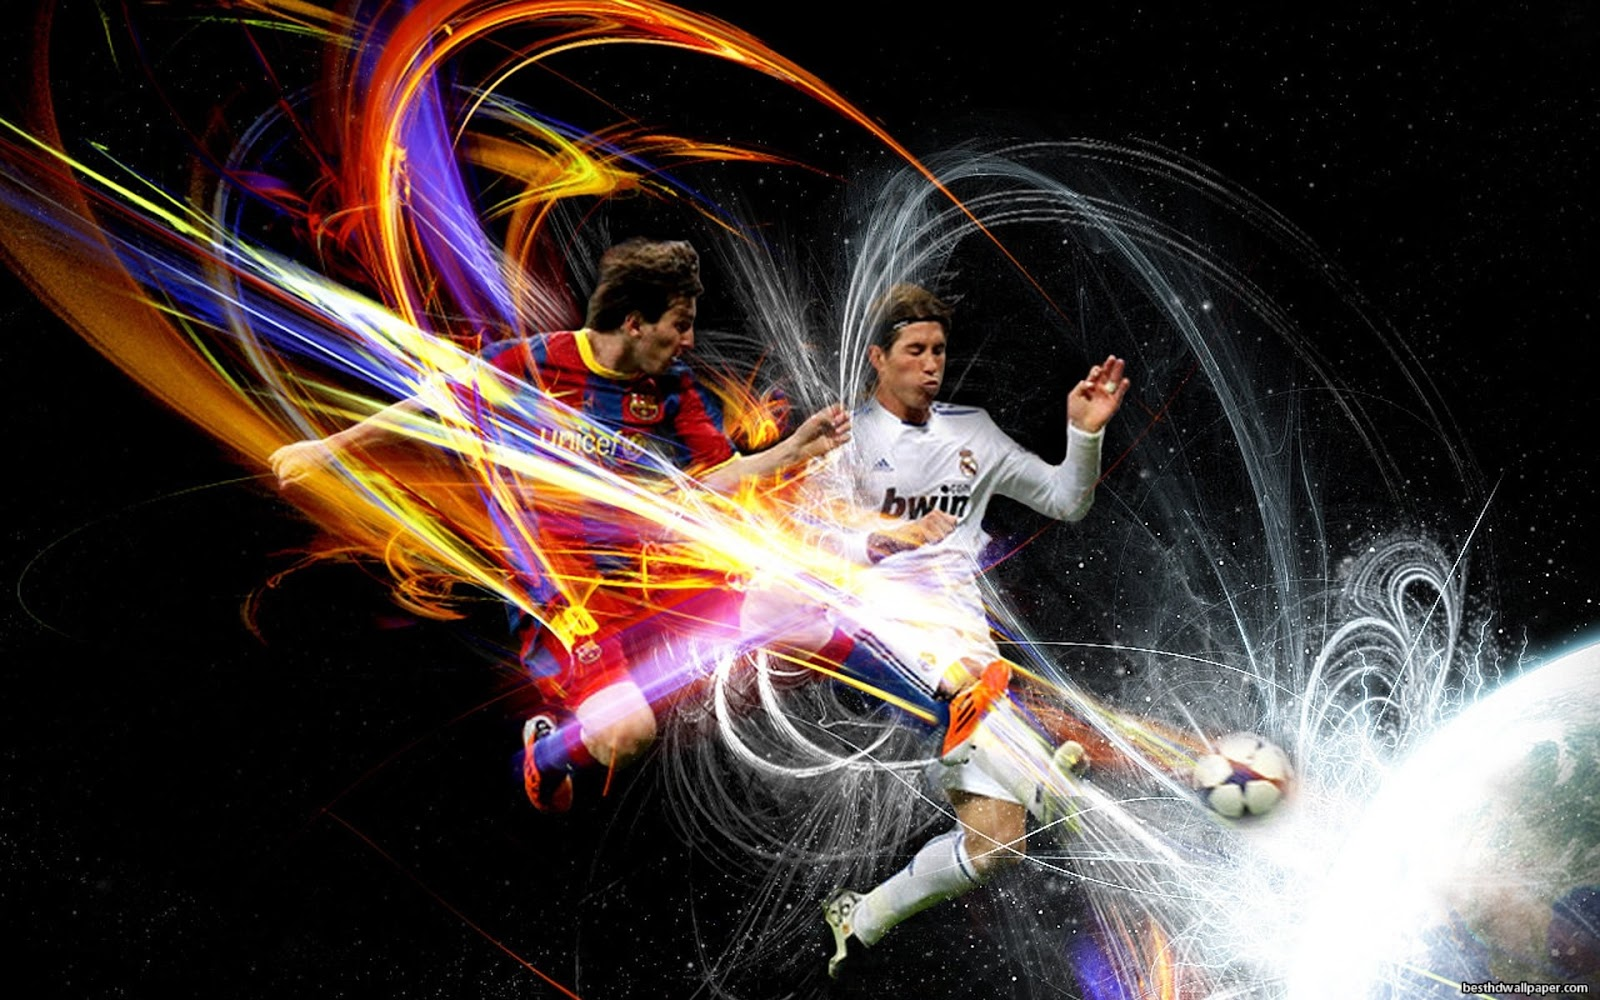 http://3.bp.blogspot.com/-dG4hA6_QTxA/Tv-L6Isg4hI/AAAAAAAADnw/8khdnq14QMs/s1600/Lionel+Messi+Desktop+Wallpaper+2012+Full+HD+On+1920x1200+Widescreen+1.jpg